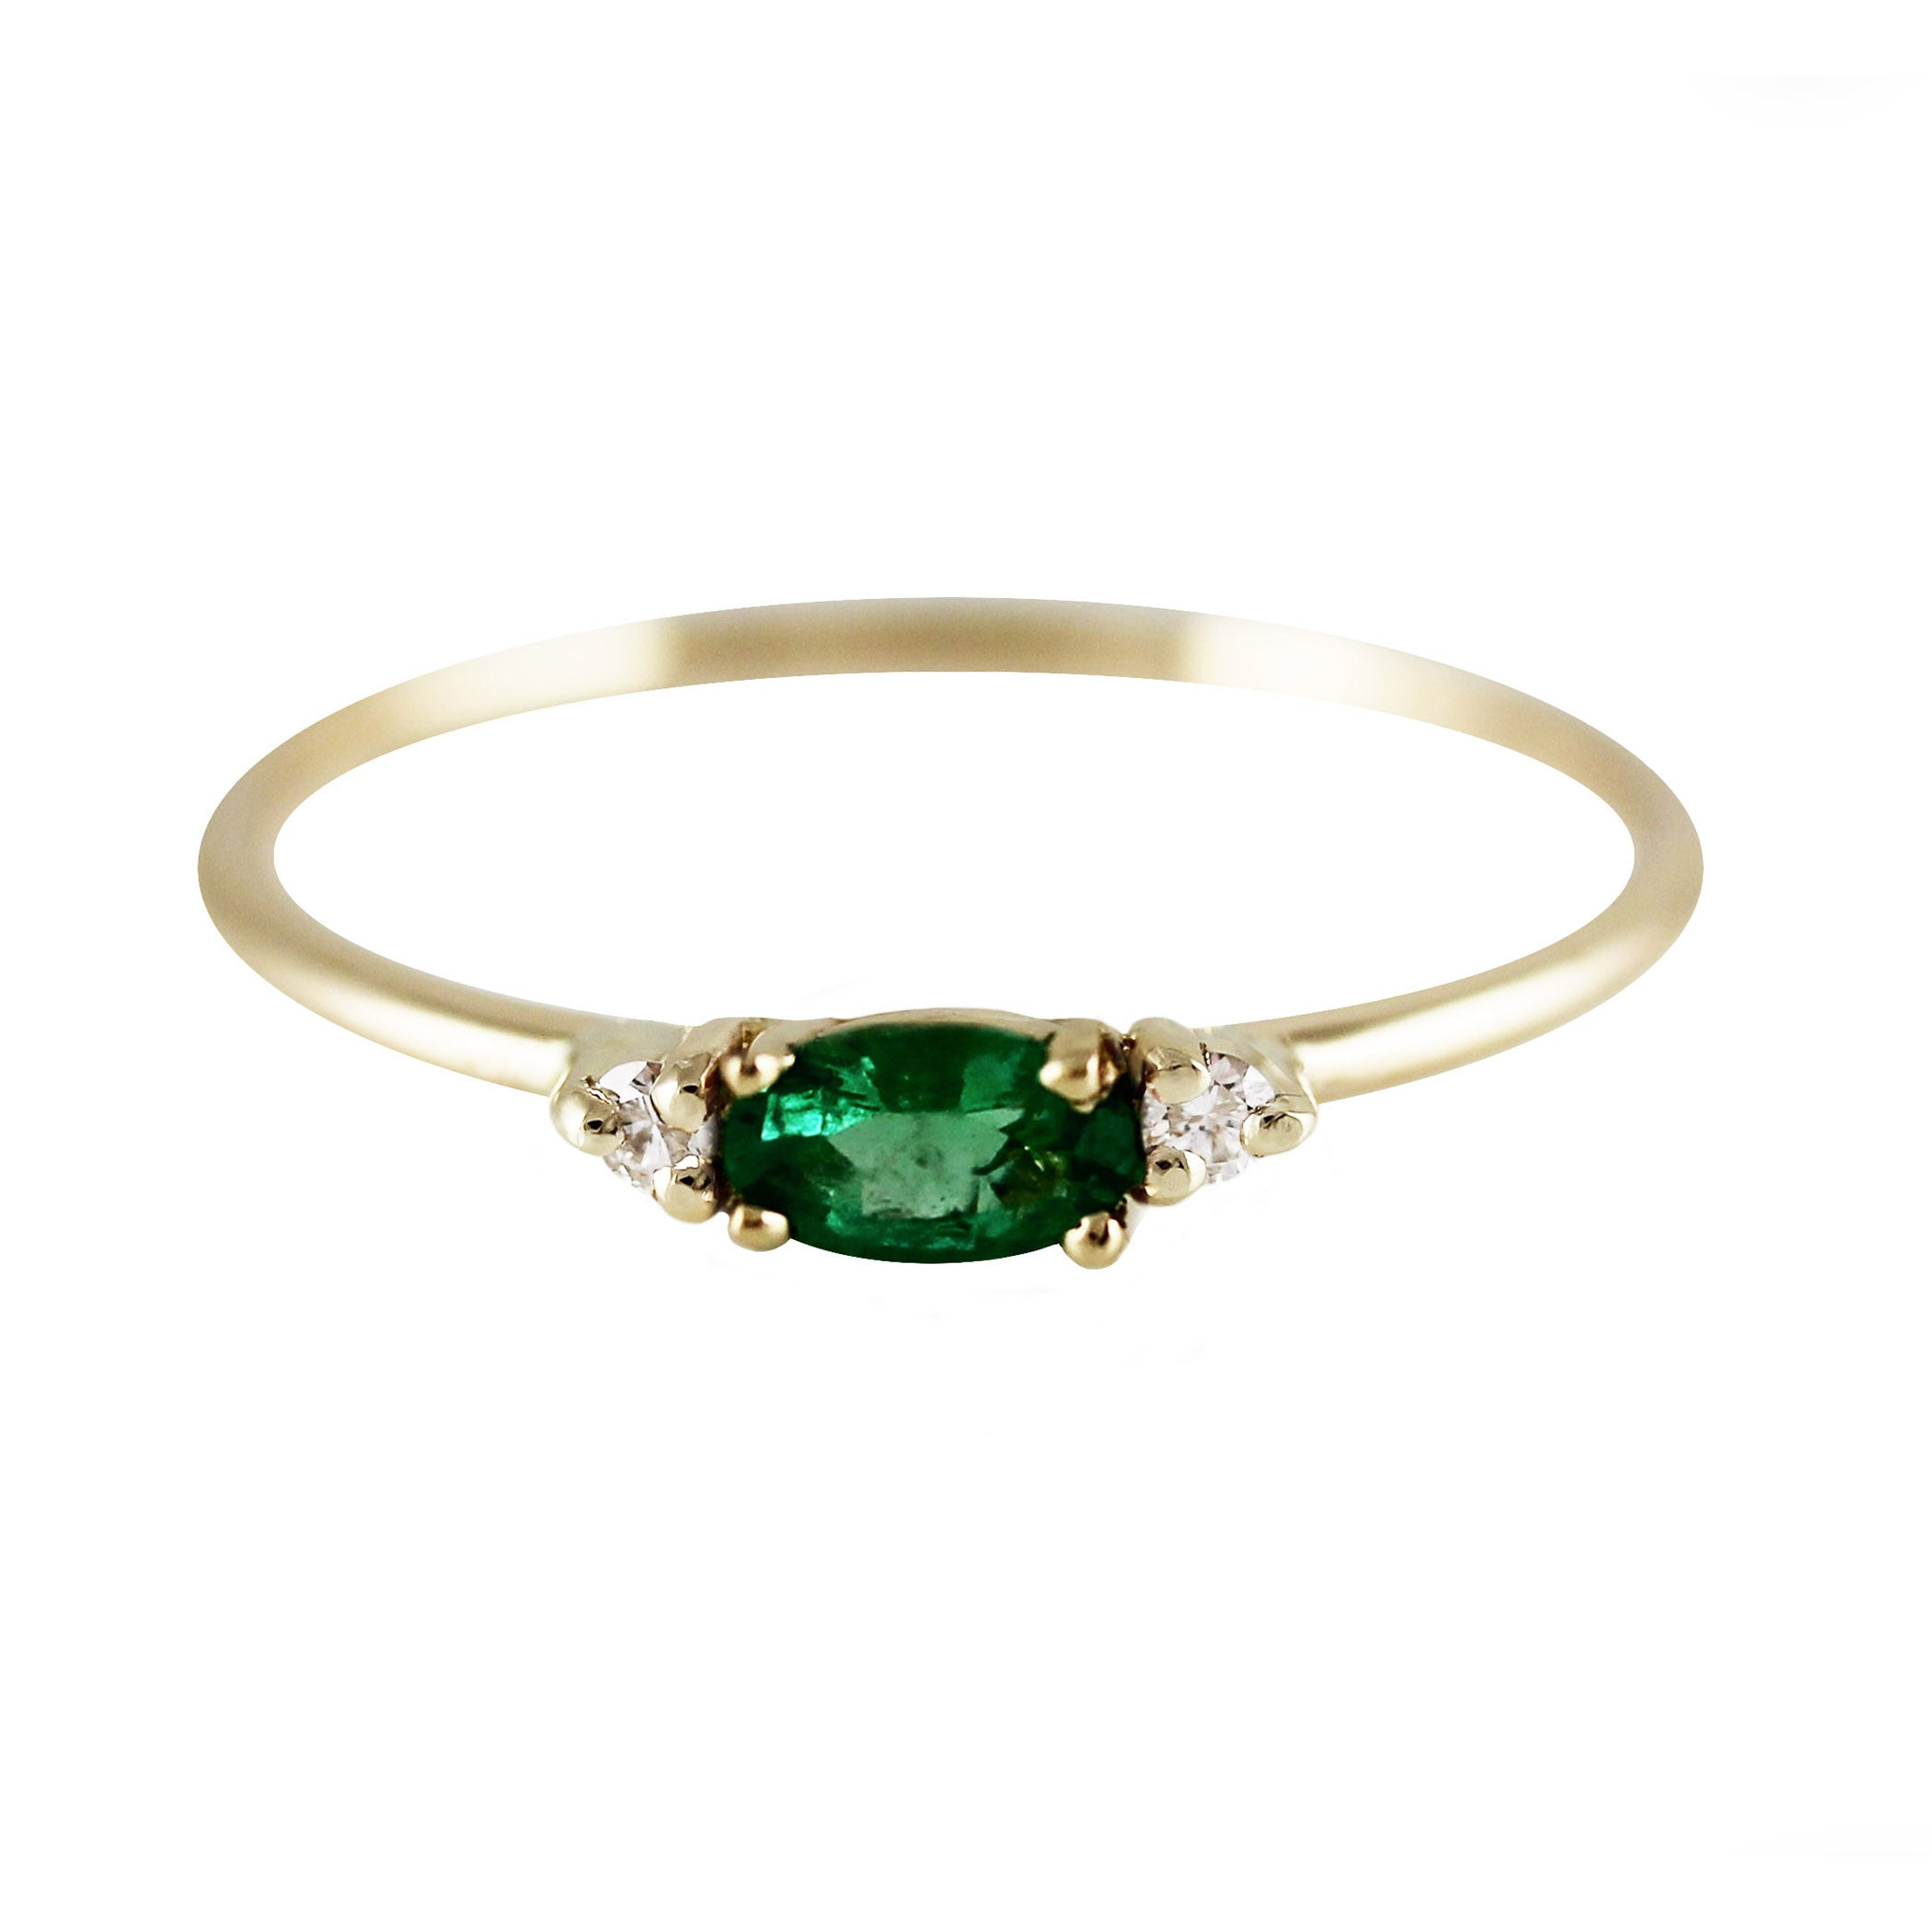 detail rings diamond e index emerald engagement ring setting